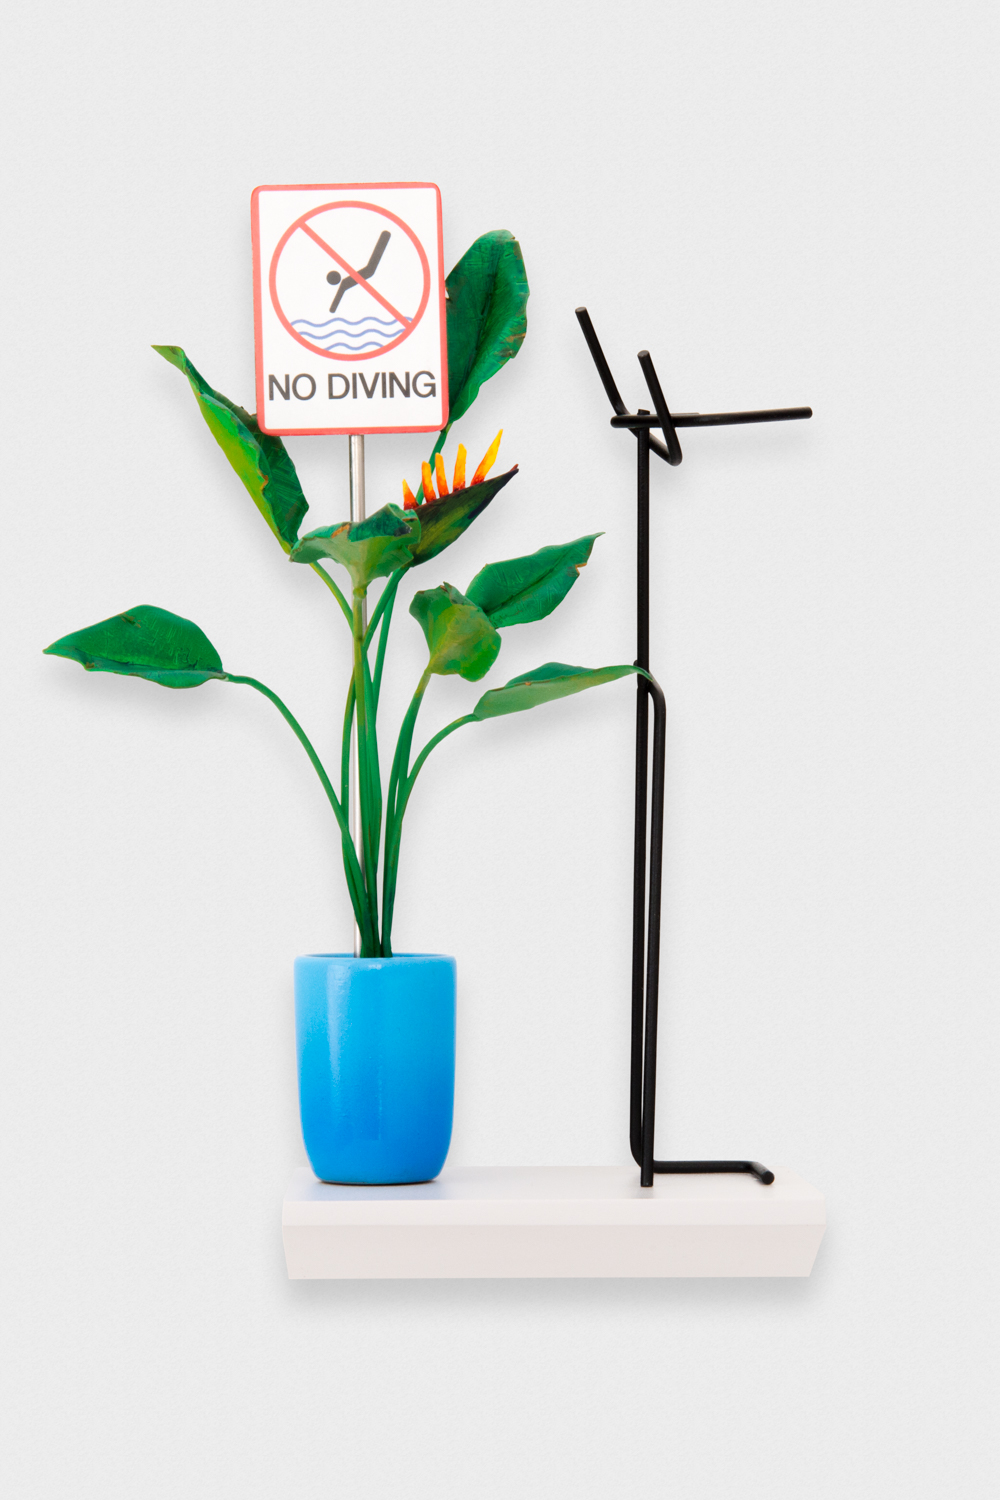 Chris Bradley  Paradise, A Bird with Modern Coat Rack (No Diving)  2017 Wood, steel, paint, stainless steel, laser jet print 9h x 6w x 5d in CB250